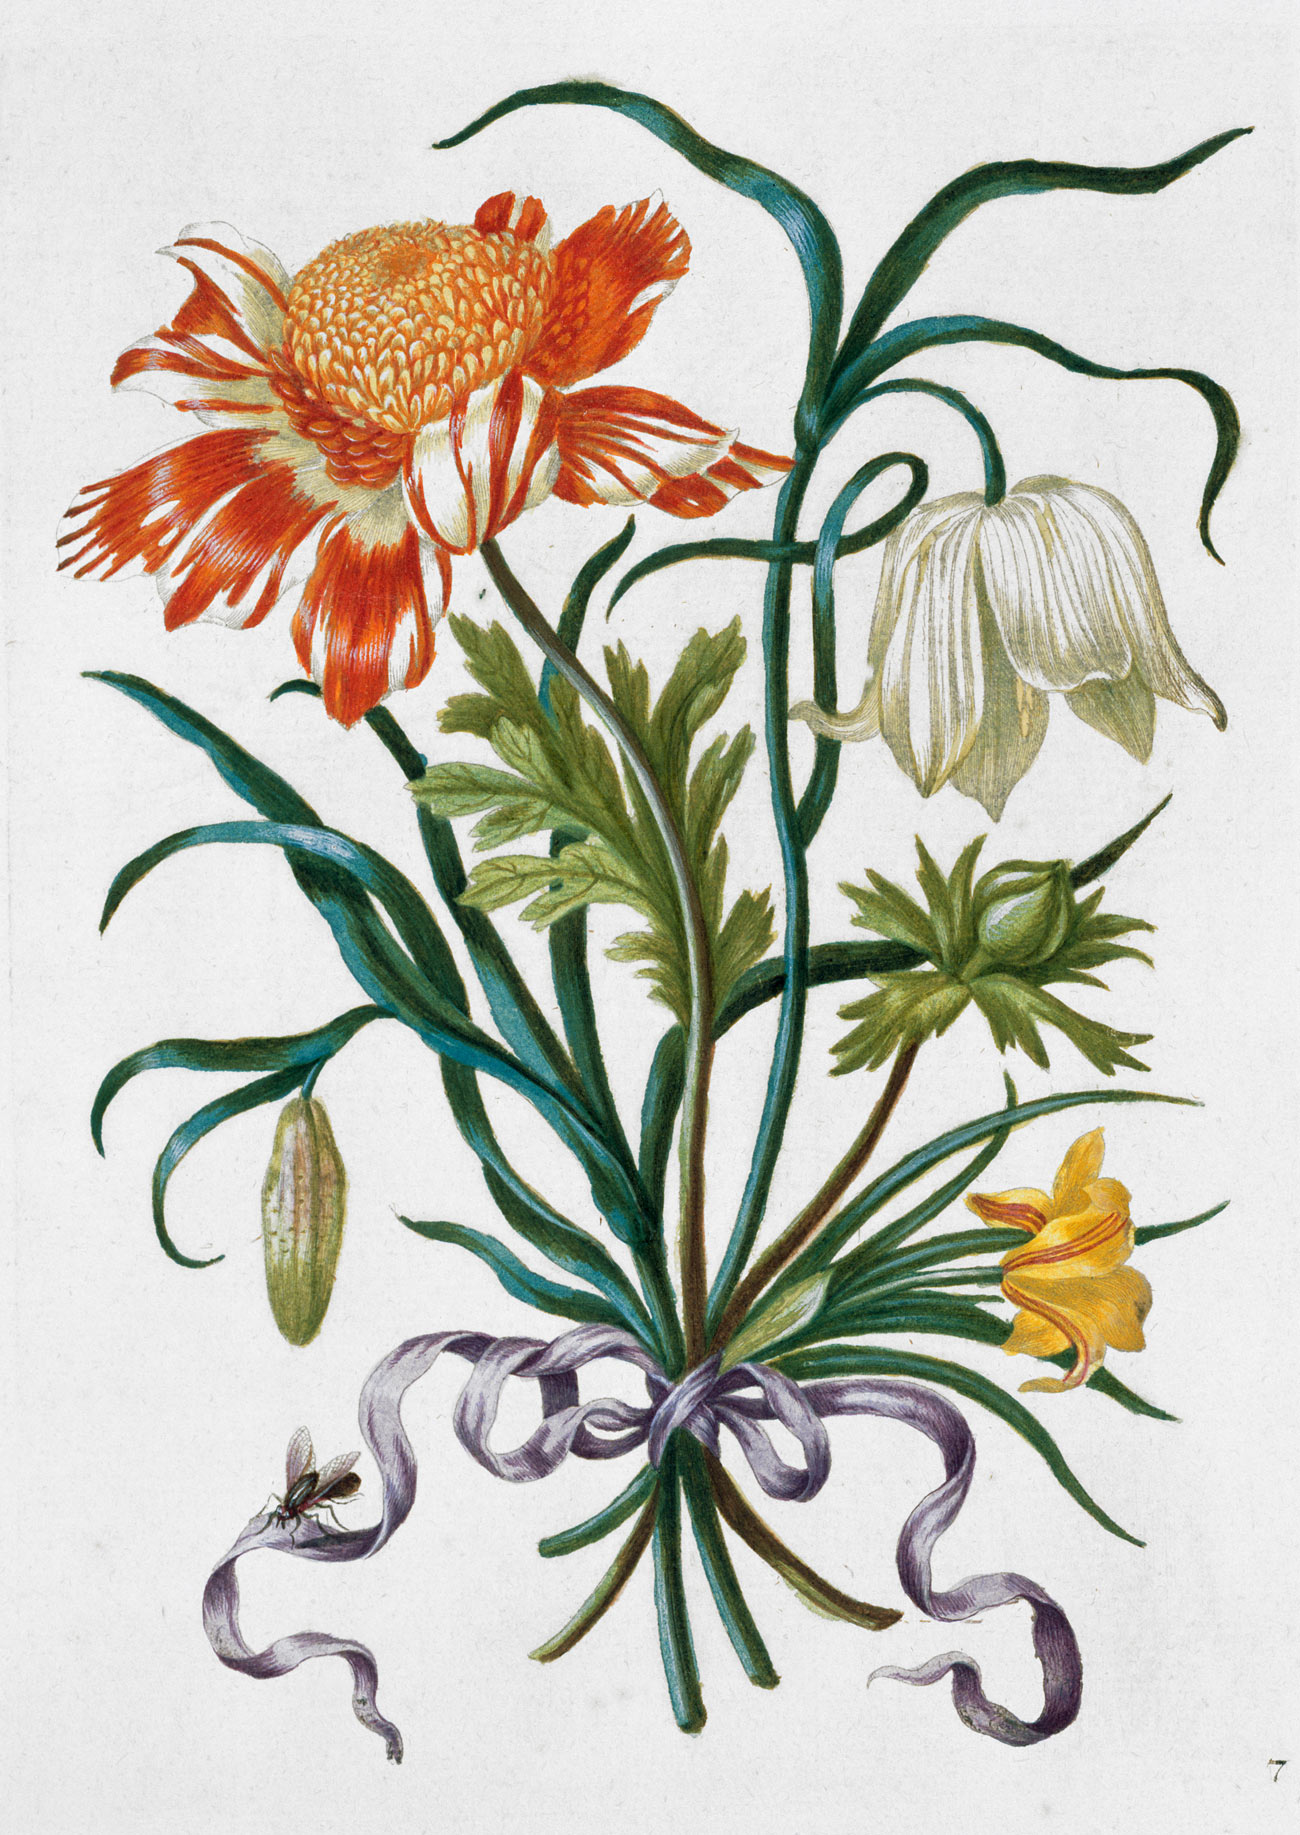 An illustration of three very showy flowers in a bouquet.